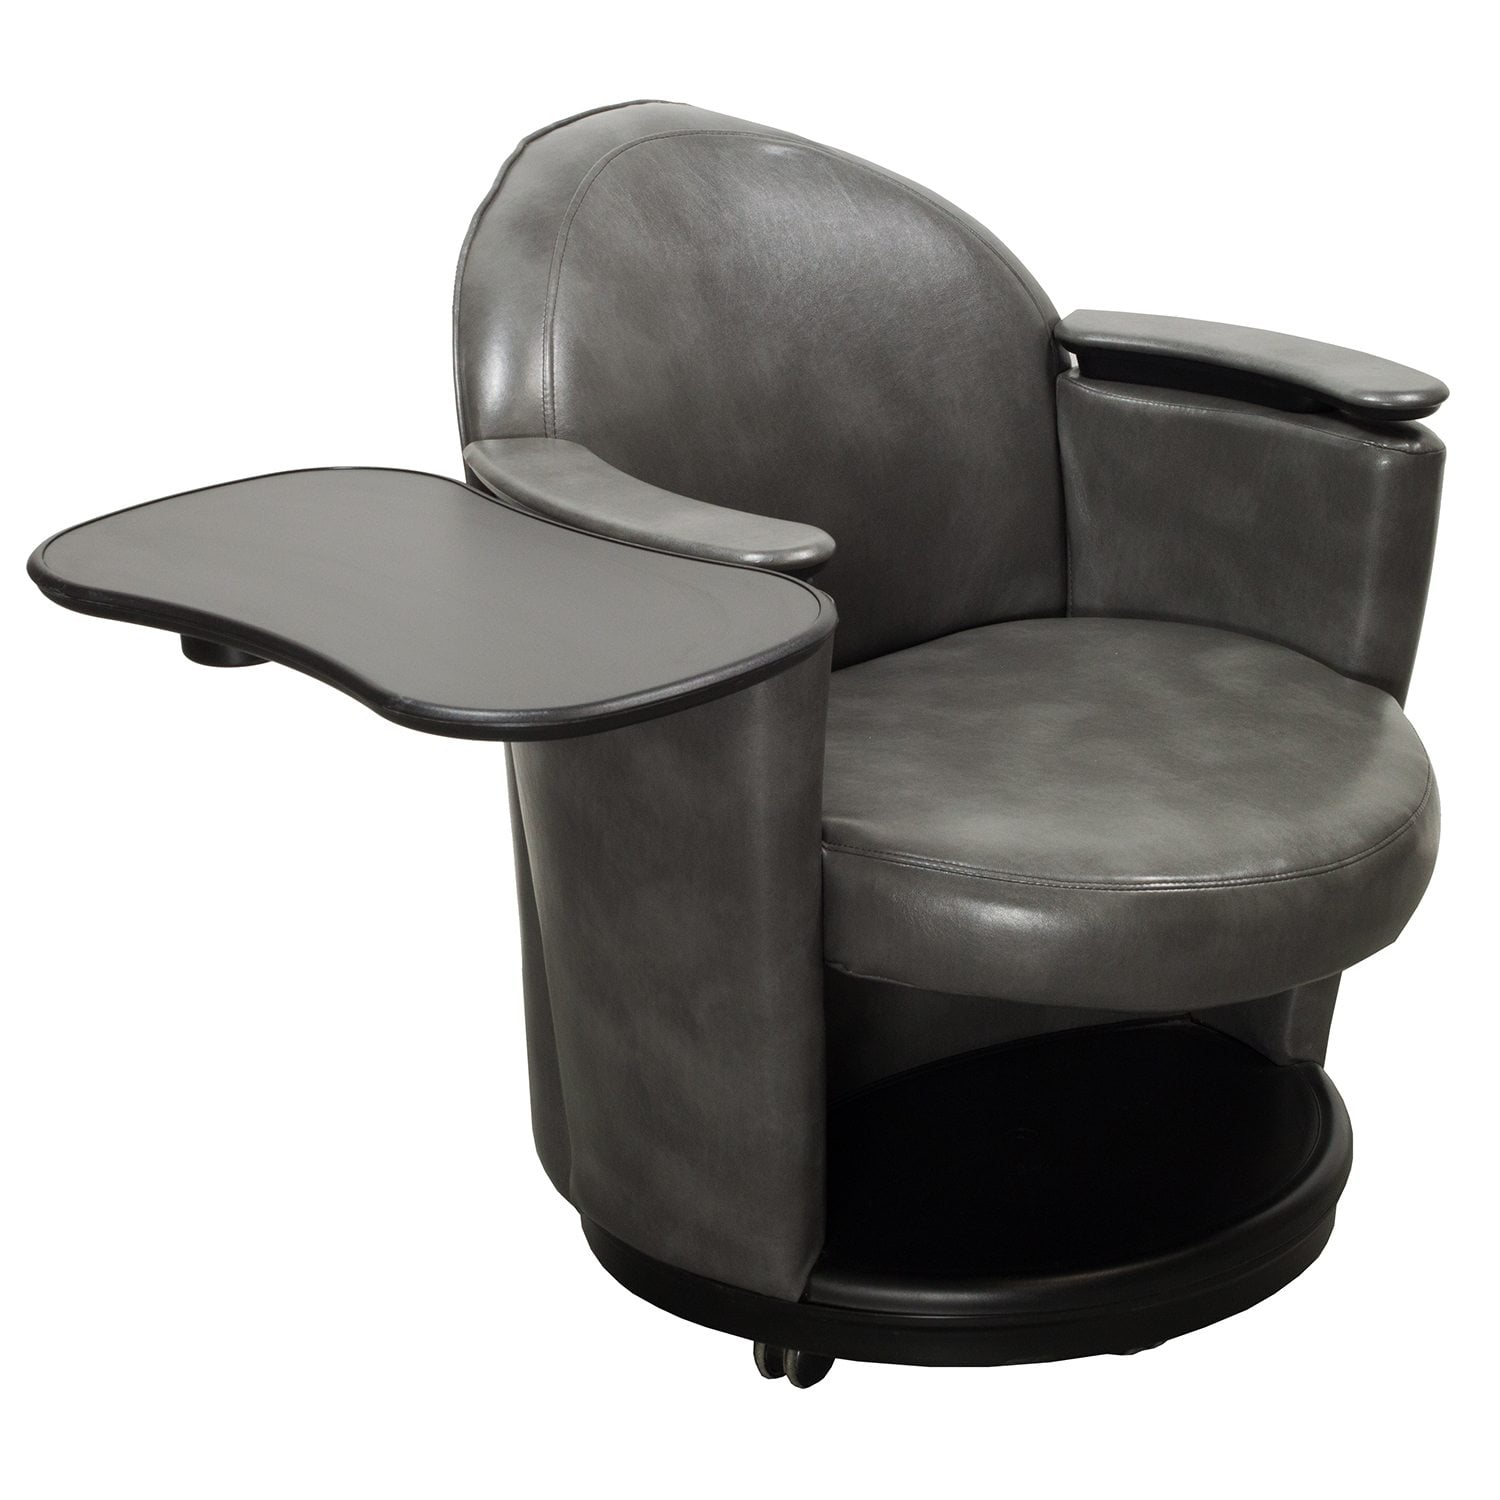 steelcase jersey chair review garden covers tesco brayton migrations used leather mobile tablet